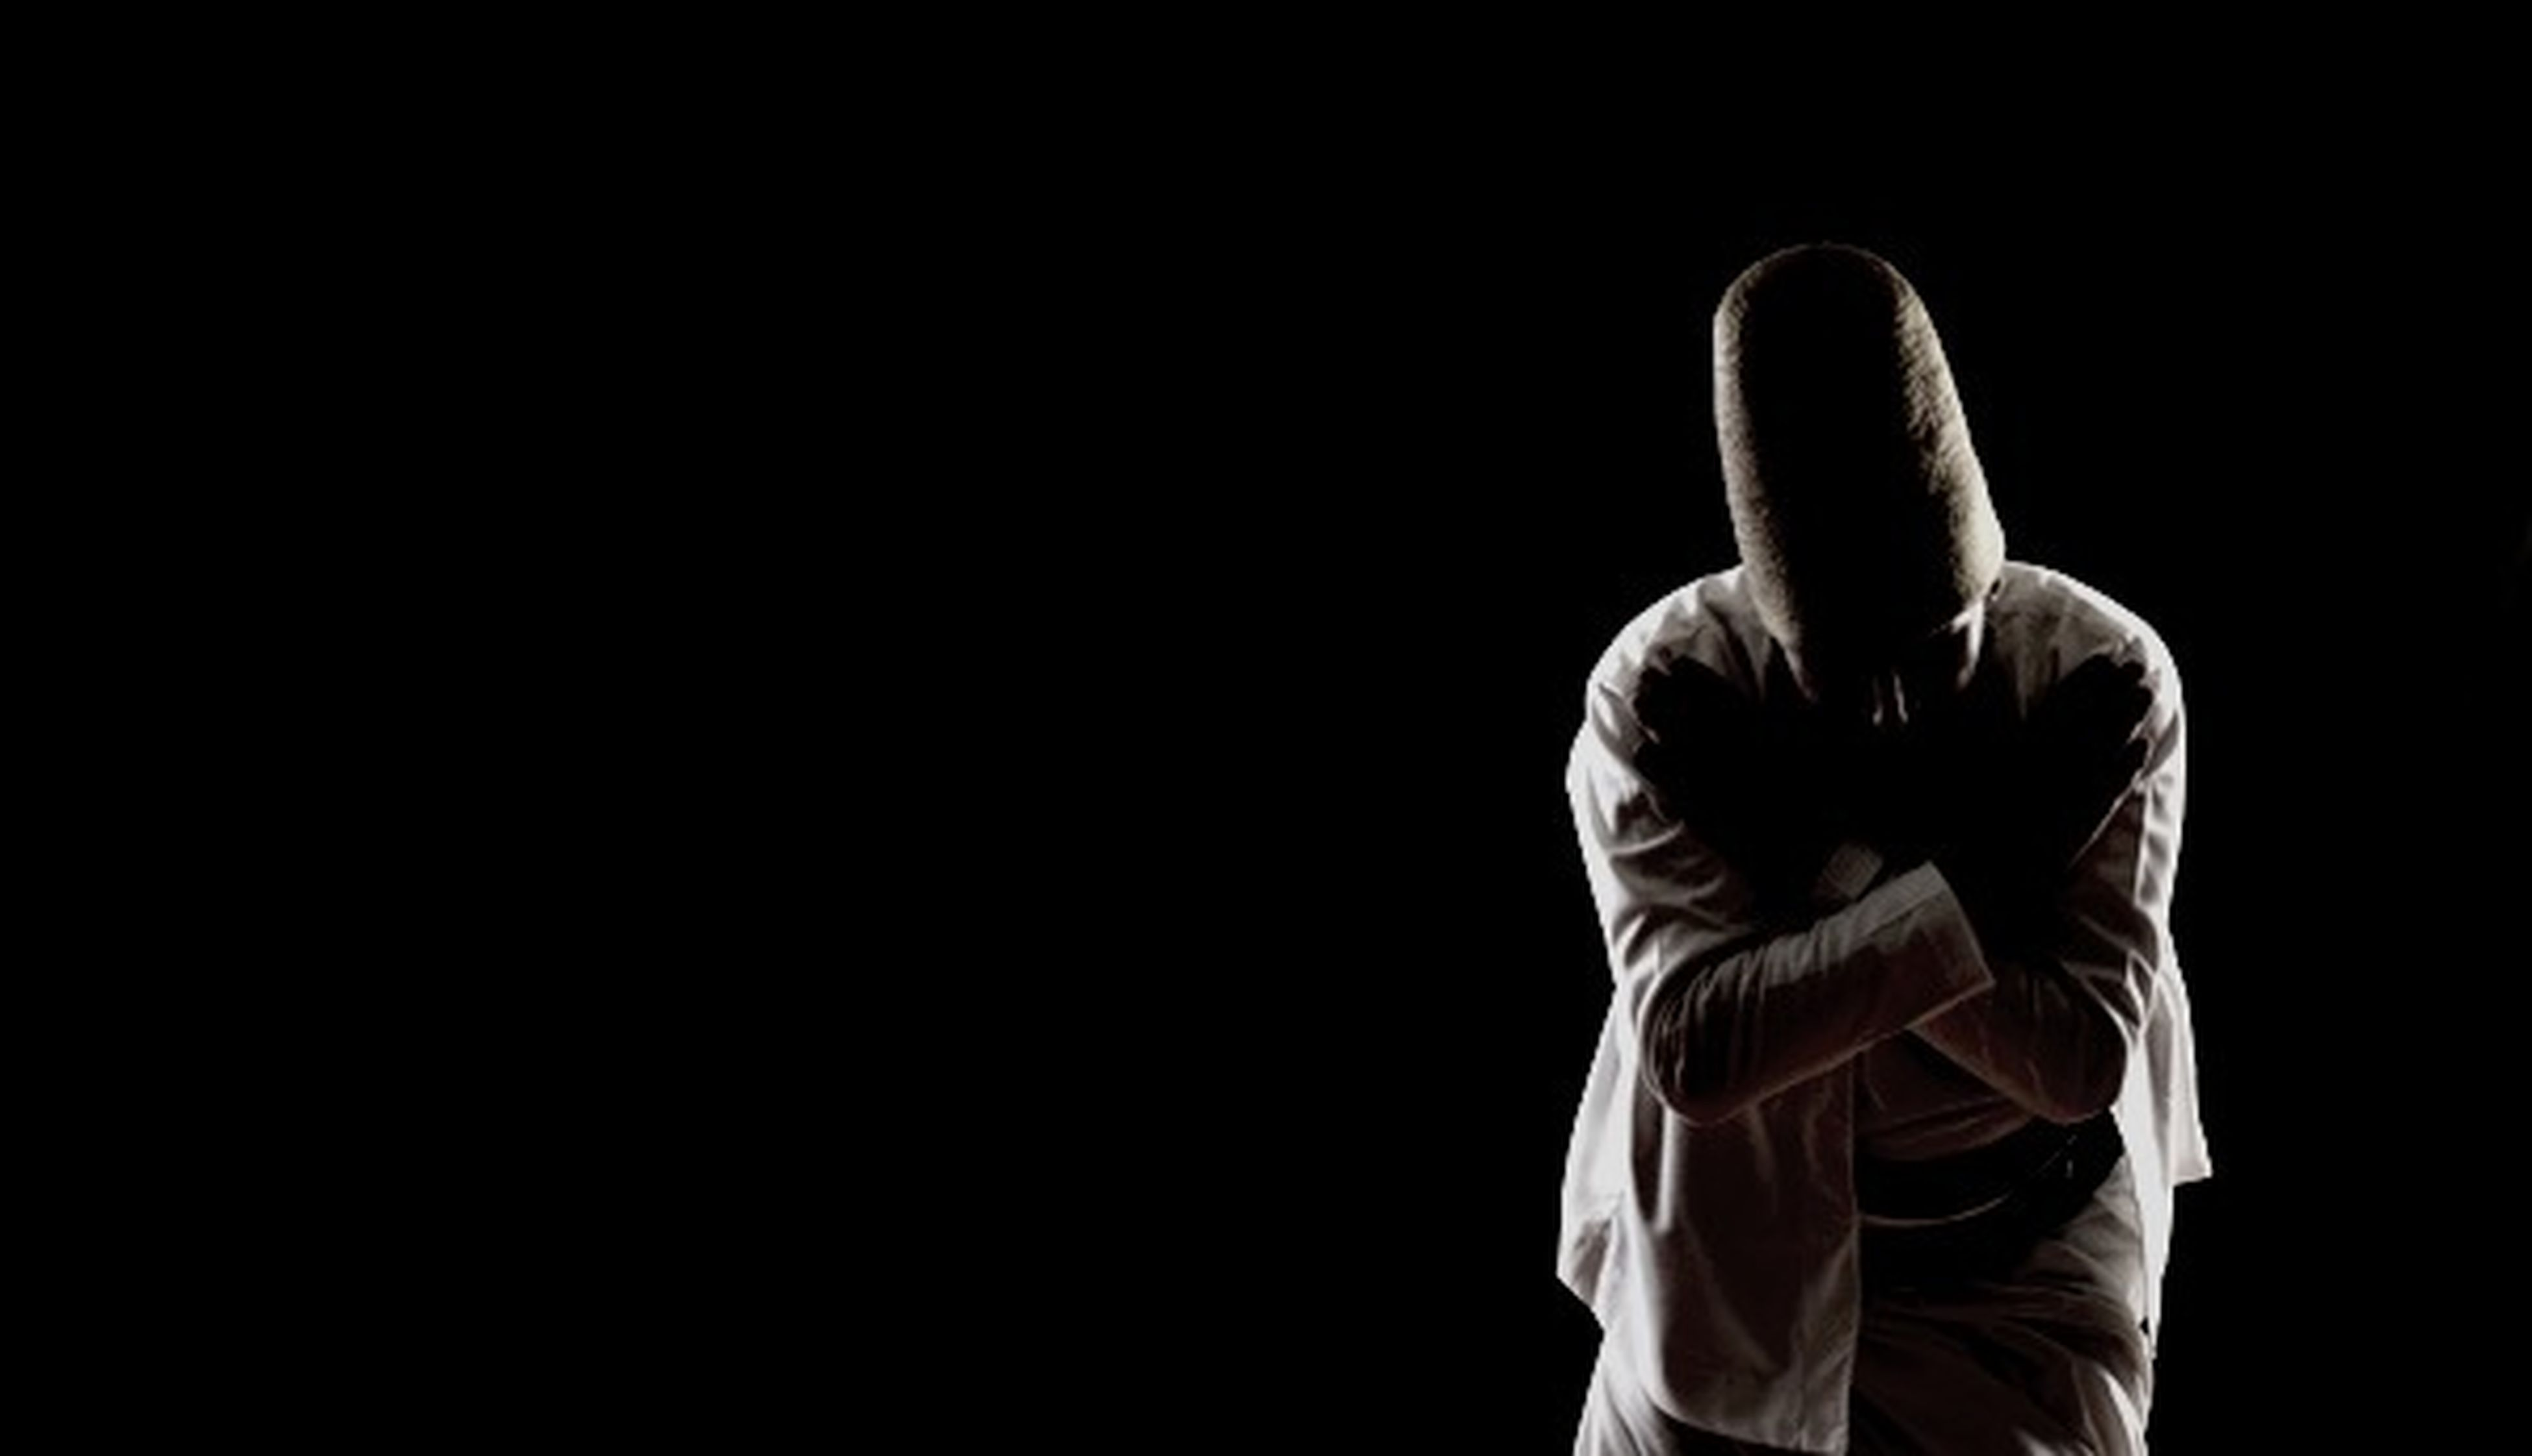 studio shot, copy space, black background, lifestyles, men, leisure activity, standing, night, person, dark, cut out, side view, close-up, clear sky, holding, unrecognizable person, part of